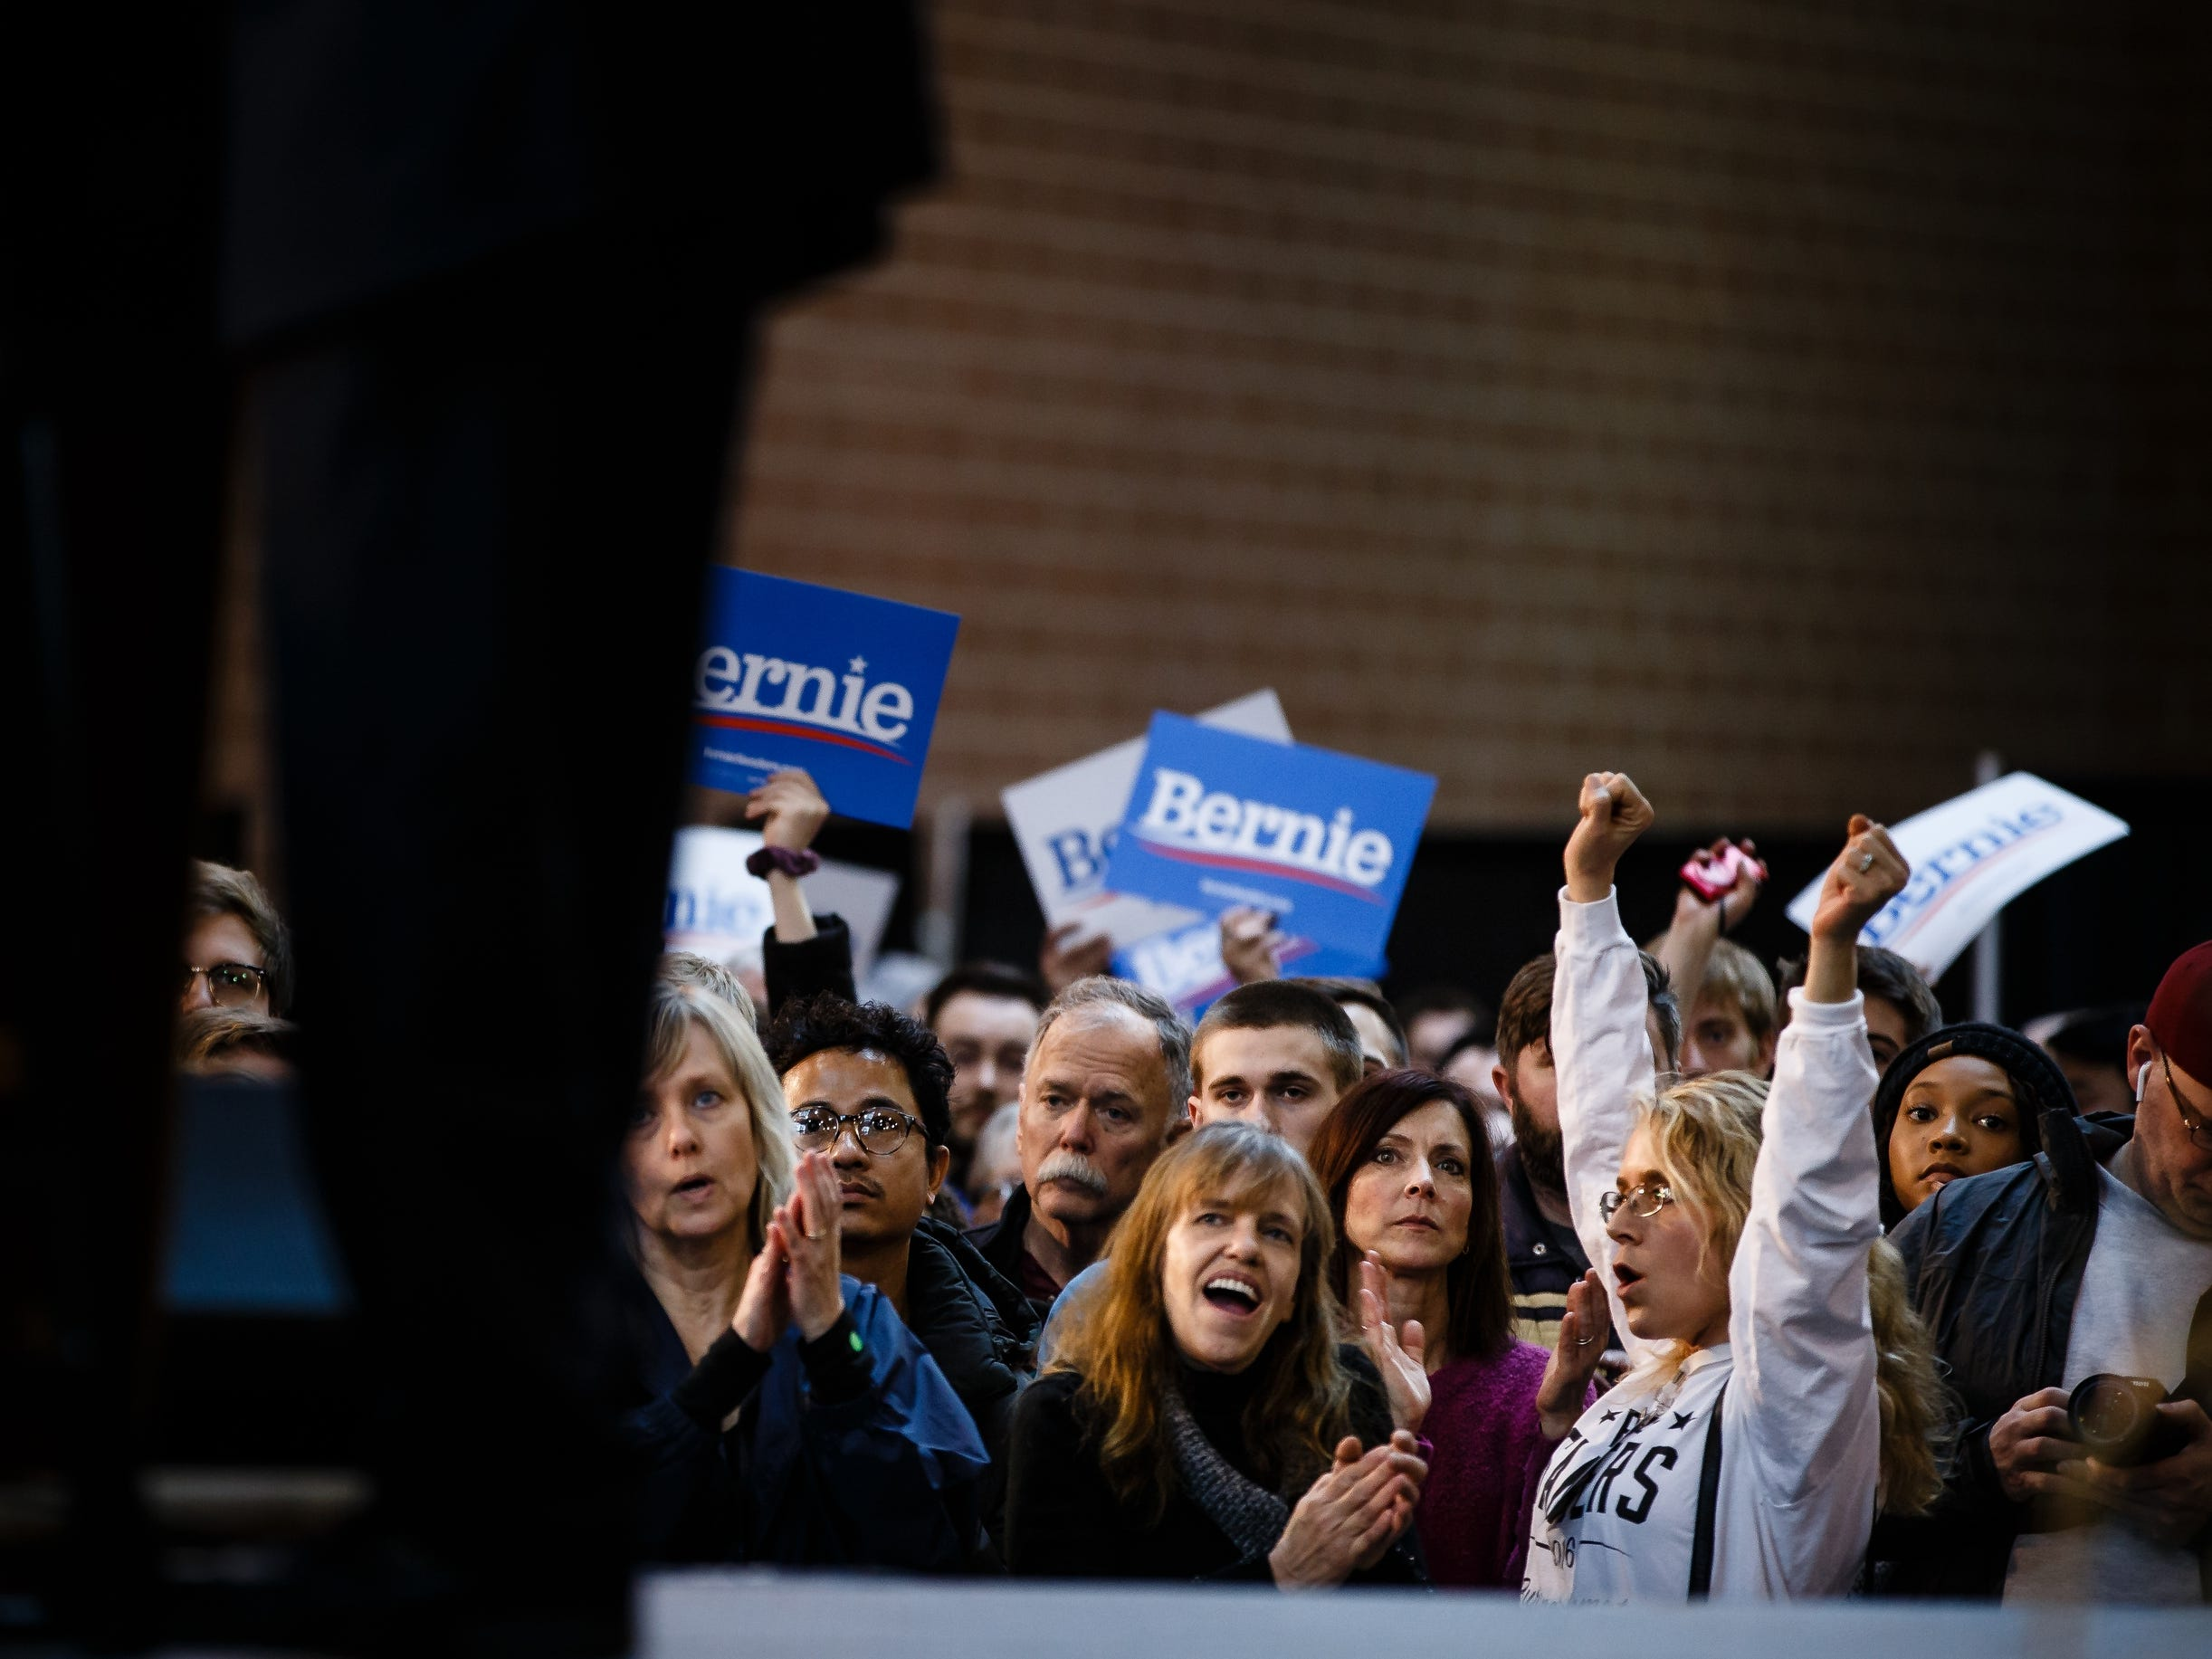 People cheer as Democratic presidential candidate Bernie Sanders speaks during a rally at the Iowa State Fairgrounds on Saturday, March 9, 2019 in Des Moines.